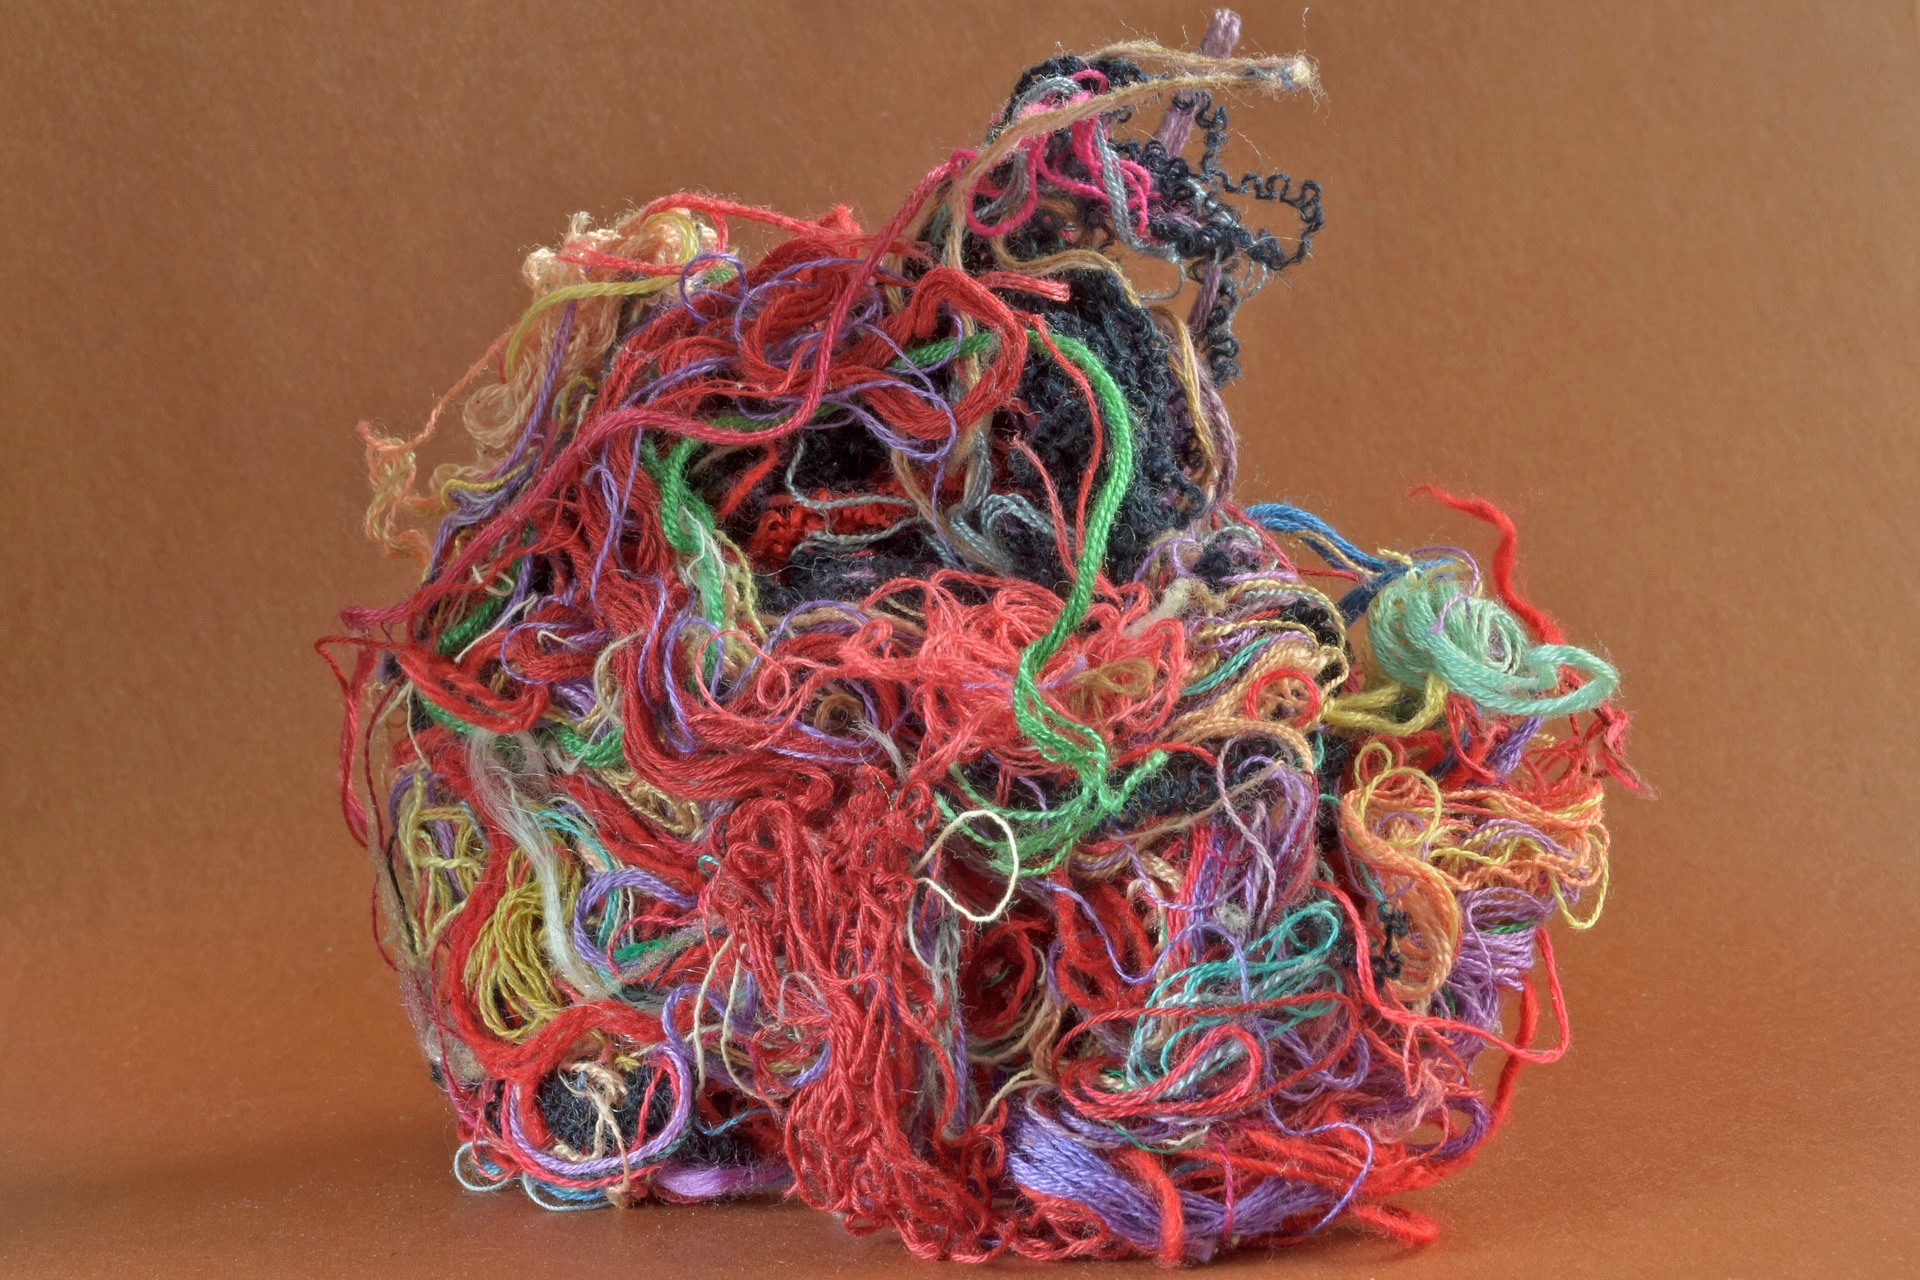 Tangle of yarn